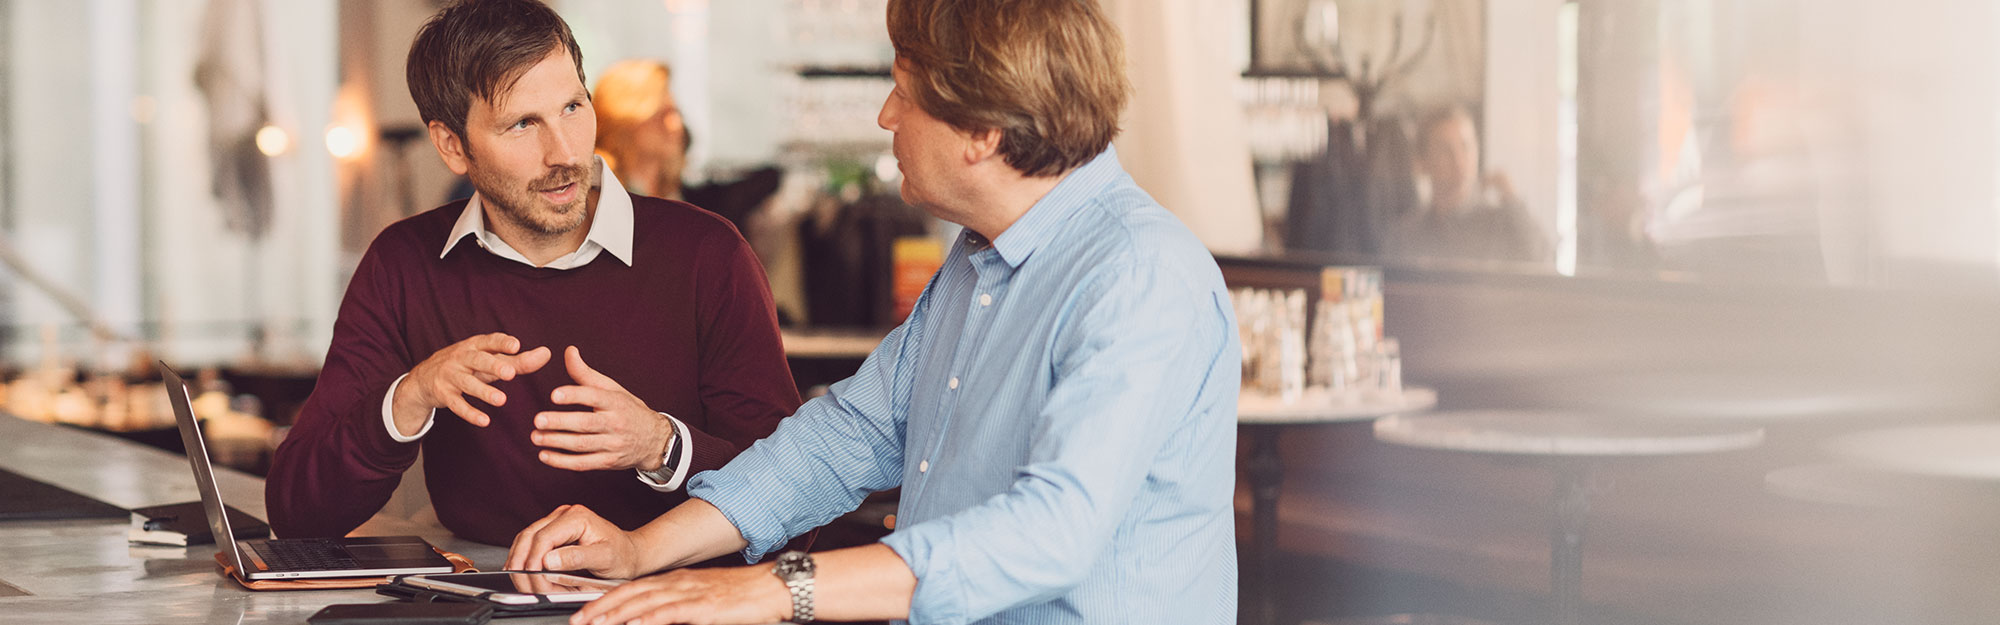 Two businessmen discussing at a counter.